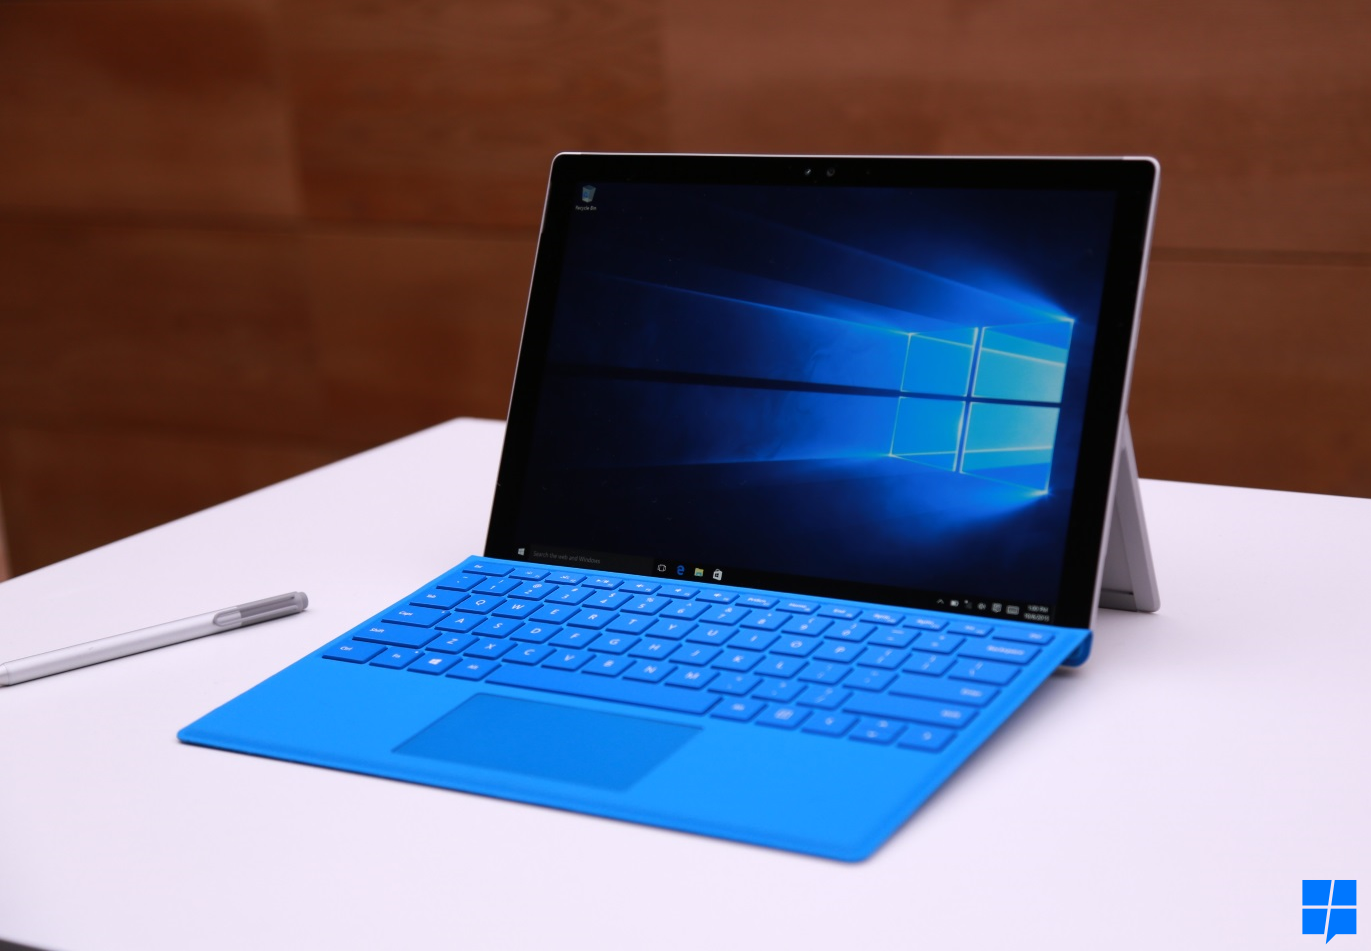 surface book and surface pro 4 snag new intel driver updates mspoweruser. Black Bedroom Furniture Sets. Home Design Ideas